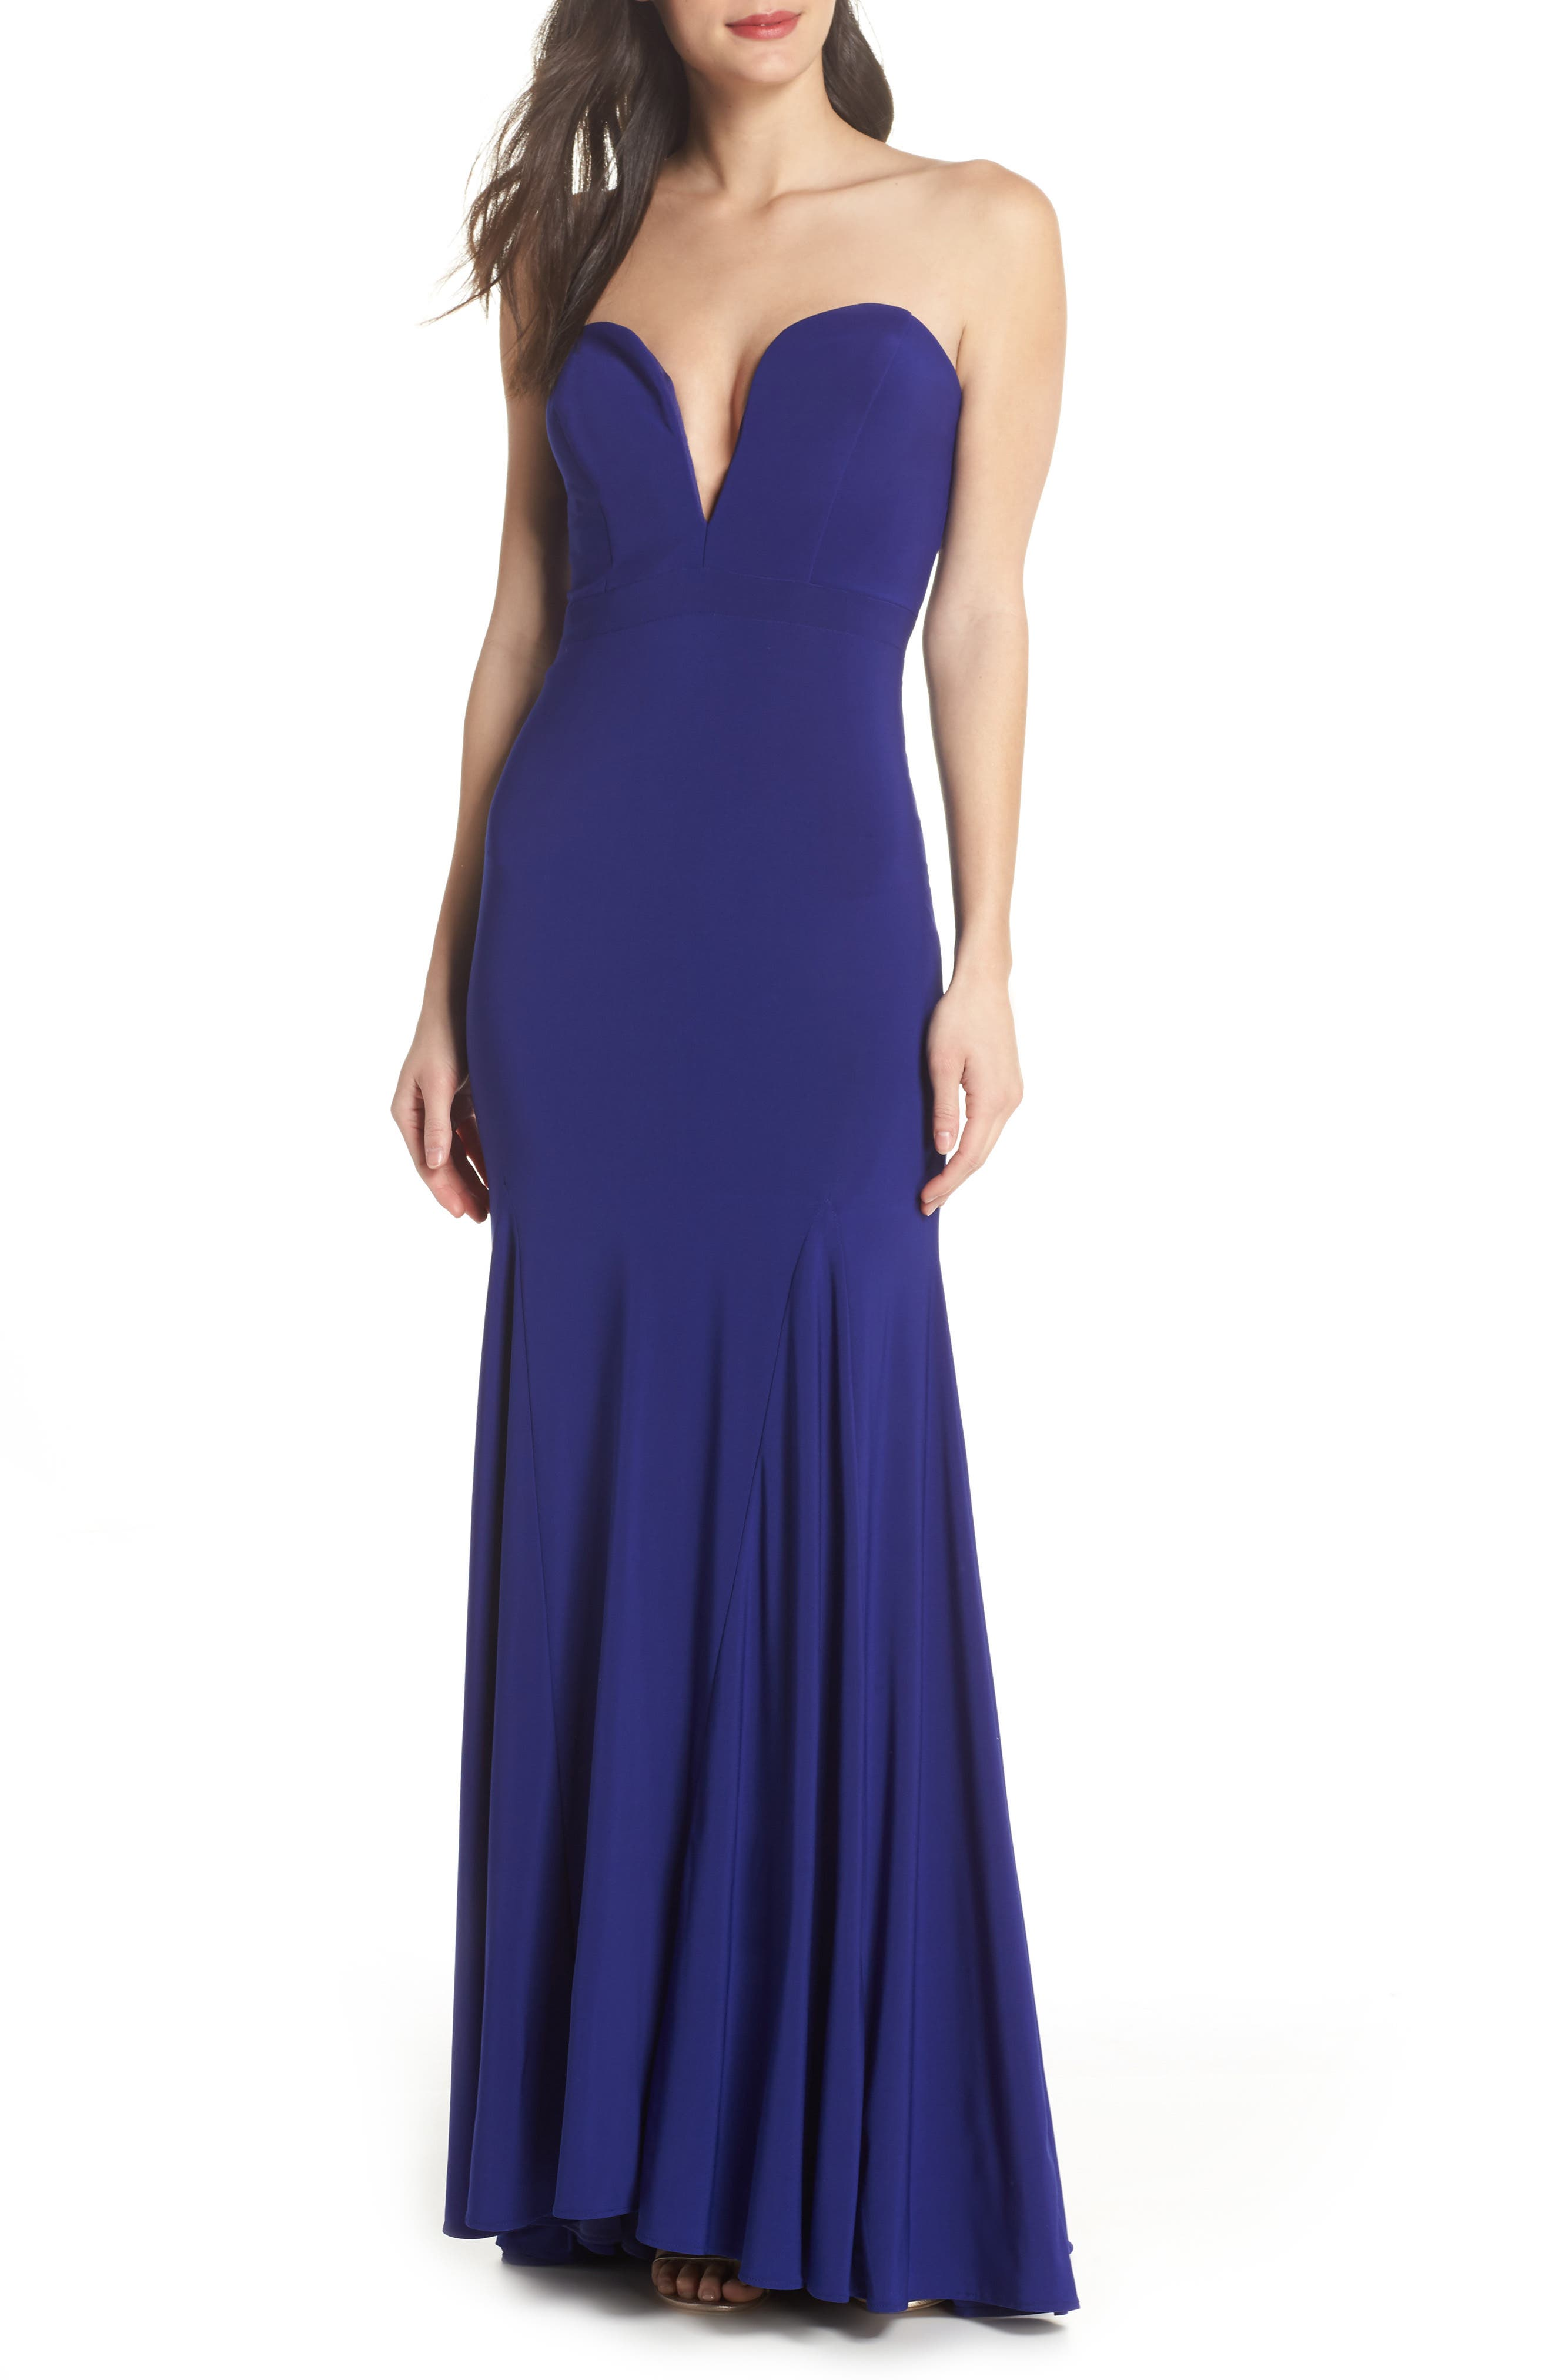 Bustier Strapless Gown,                         Main,                         color,